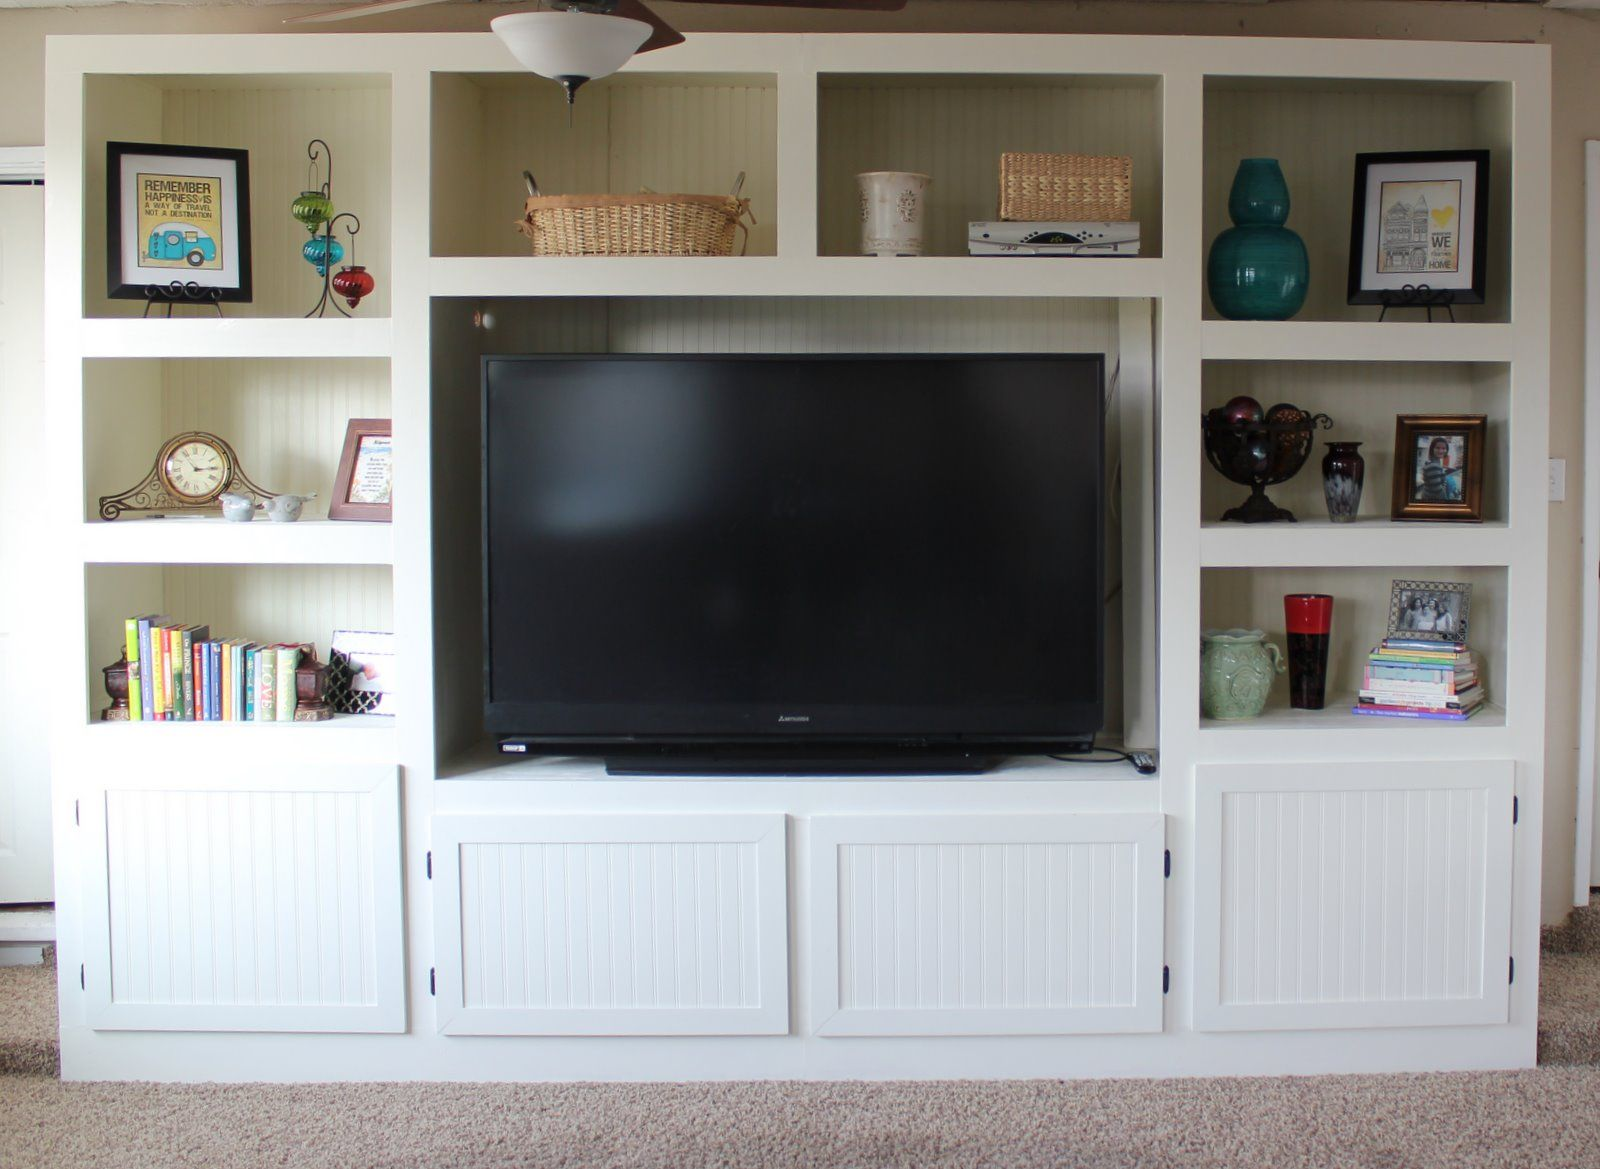 Diy Entertainment Center Ideas Plans Built In Refurbish Cheap Dresser Palle Built In Entertainment Center Diy Entertainment Center Living Room Renovation